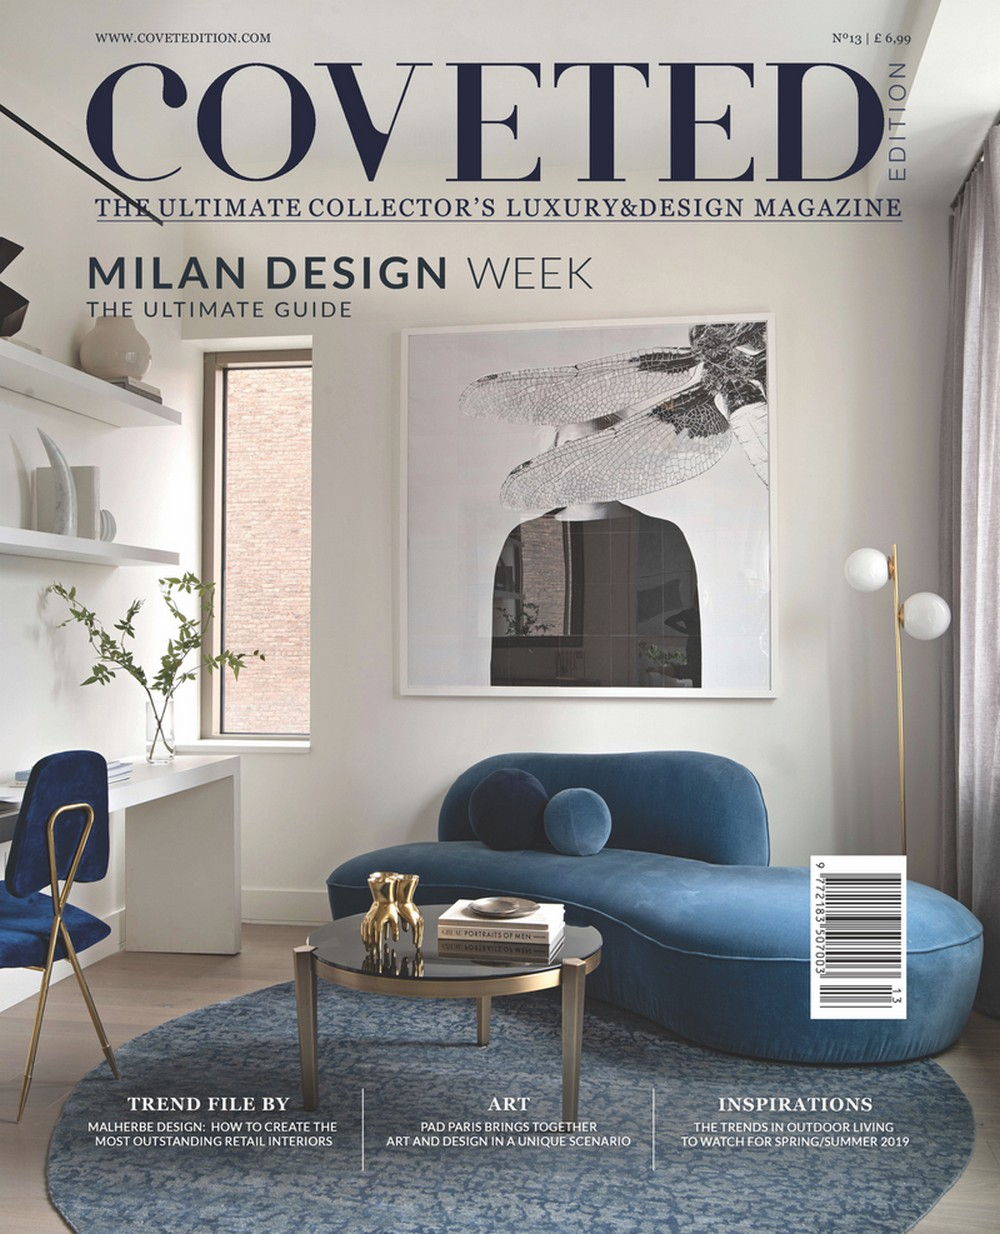 CovetED Magazine's 13th Issue Is All About Milan Design Week coveted magazine CovetED Magazine's 13th Issue Is All About Milan Design Week CovetED Magazines 13th Issue Is All About Milan Design Week 6